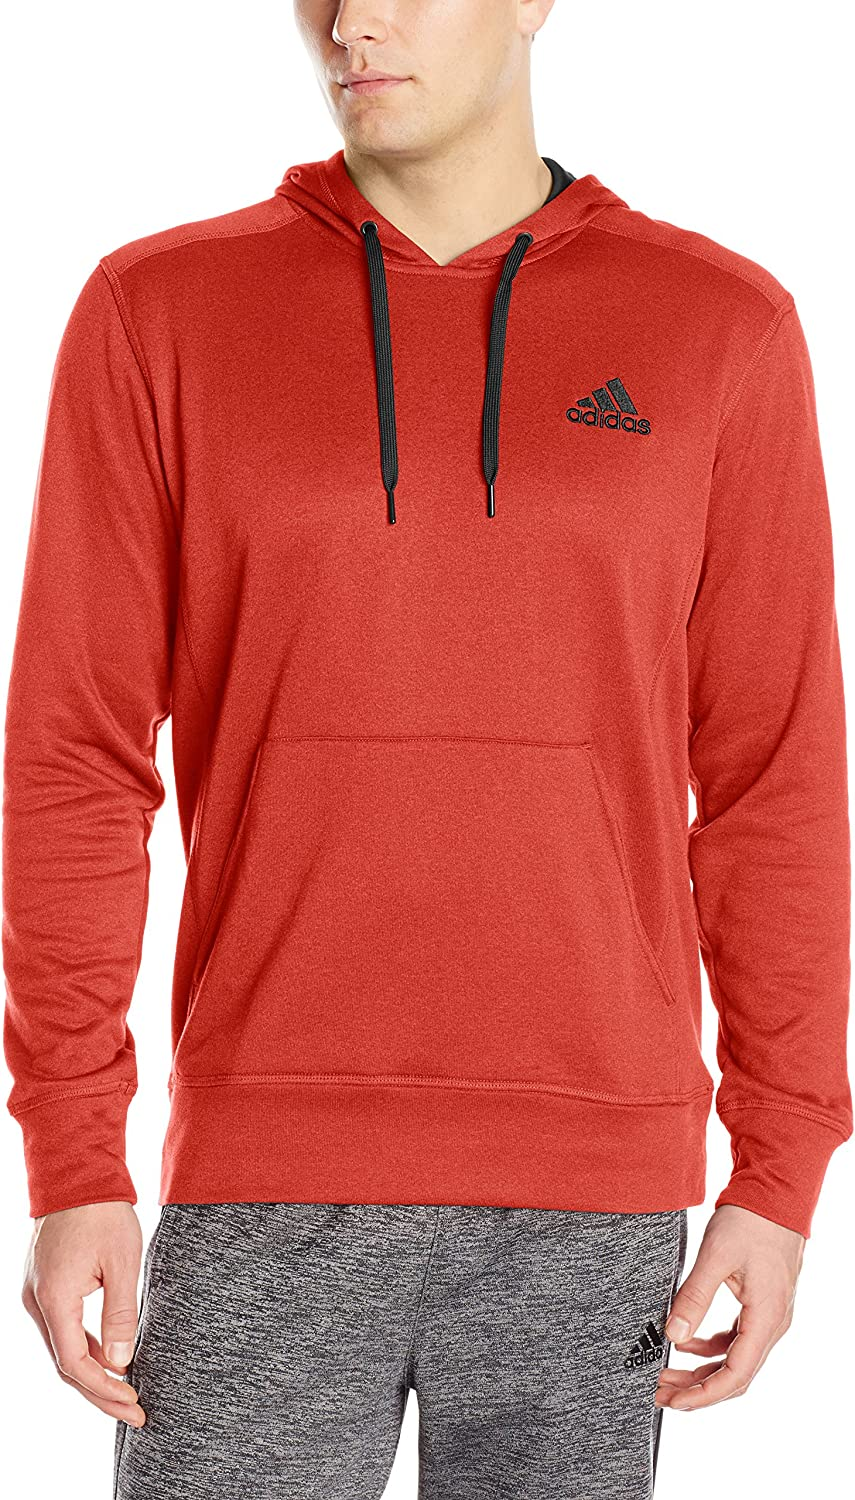 adidas Performance Men's Go-to Max 83% OFF Hoodie Fleece Pullover Ranking integrated 1st place